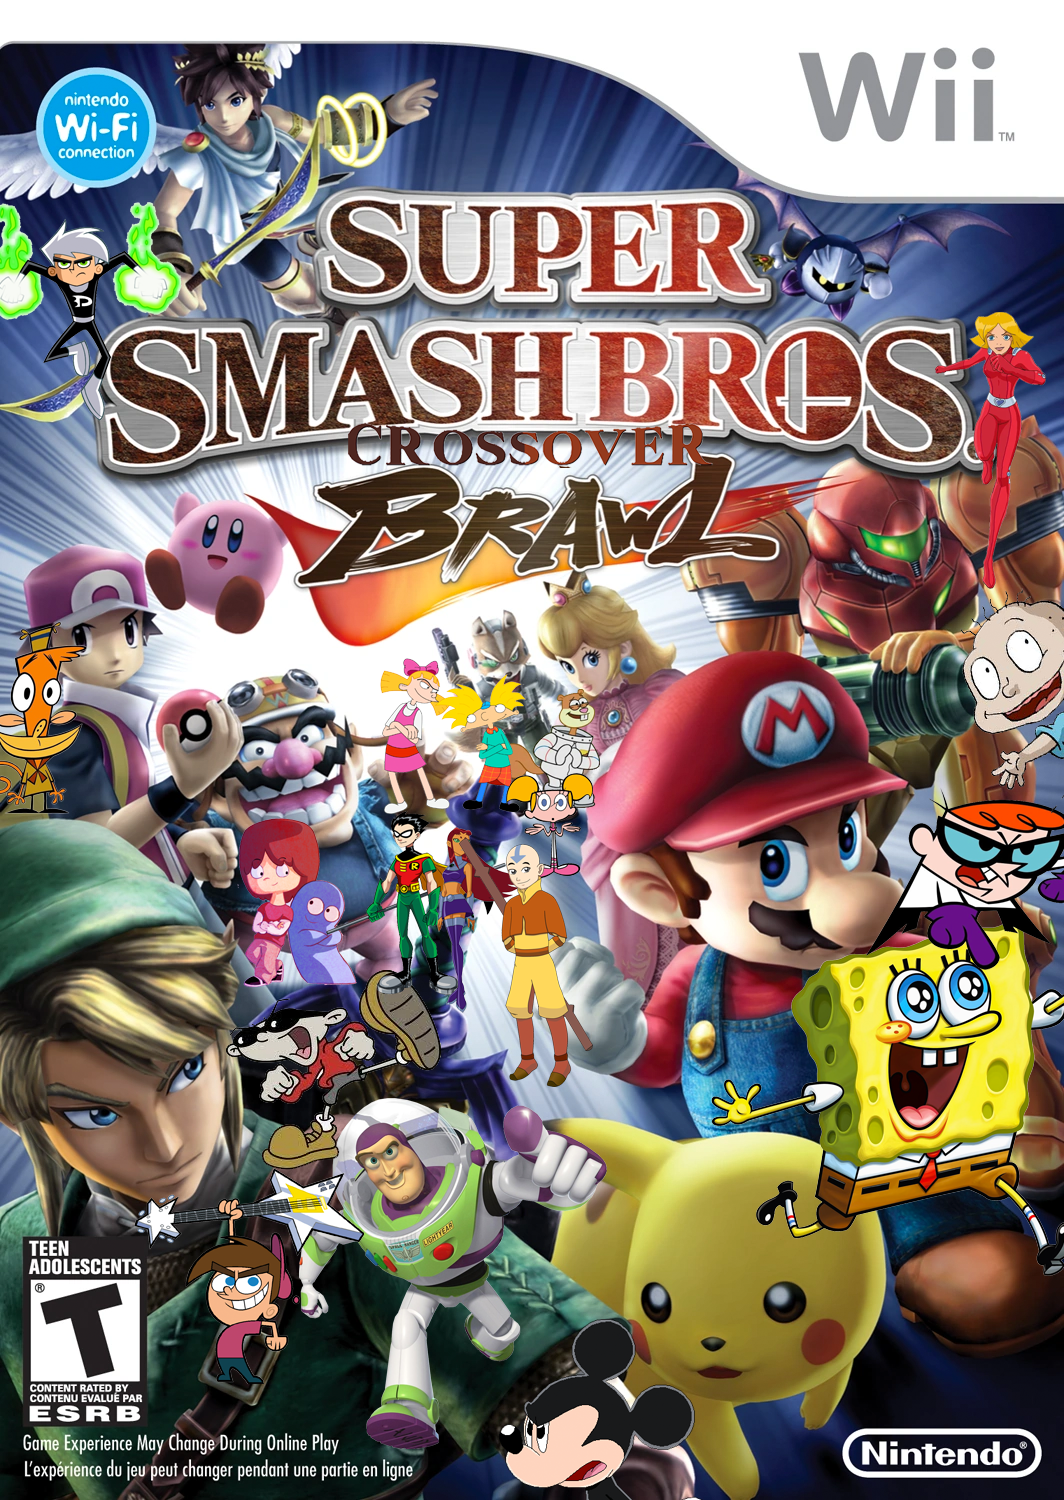 Super Smash Bros. Crossover Brawl